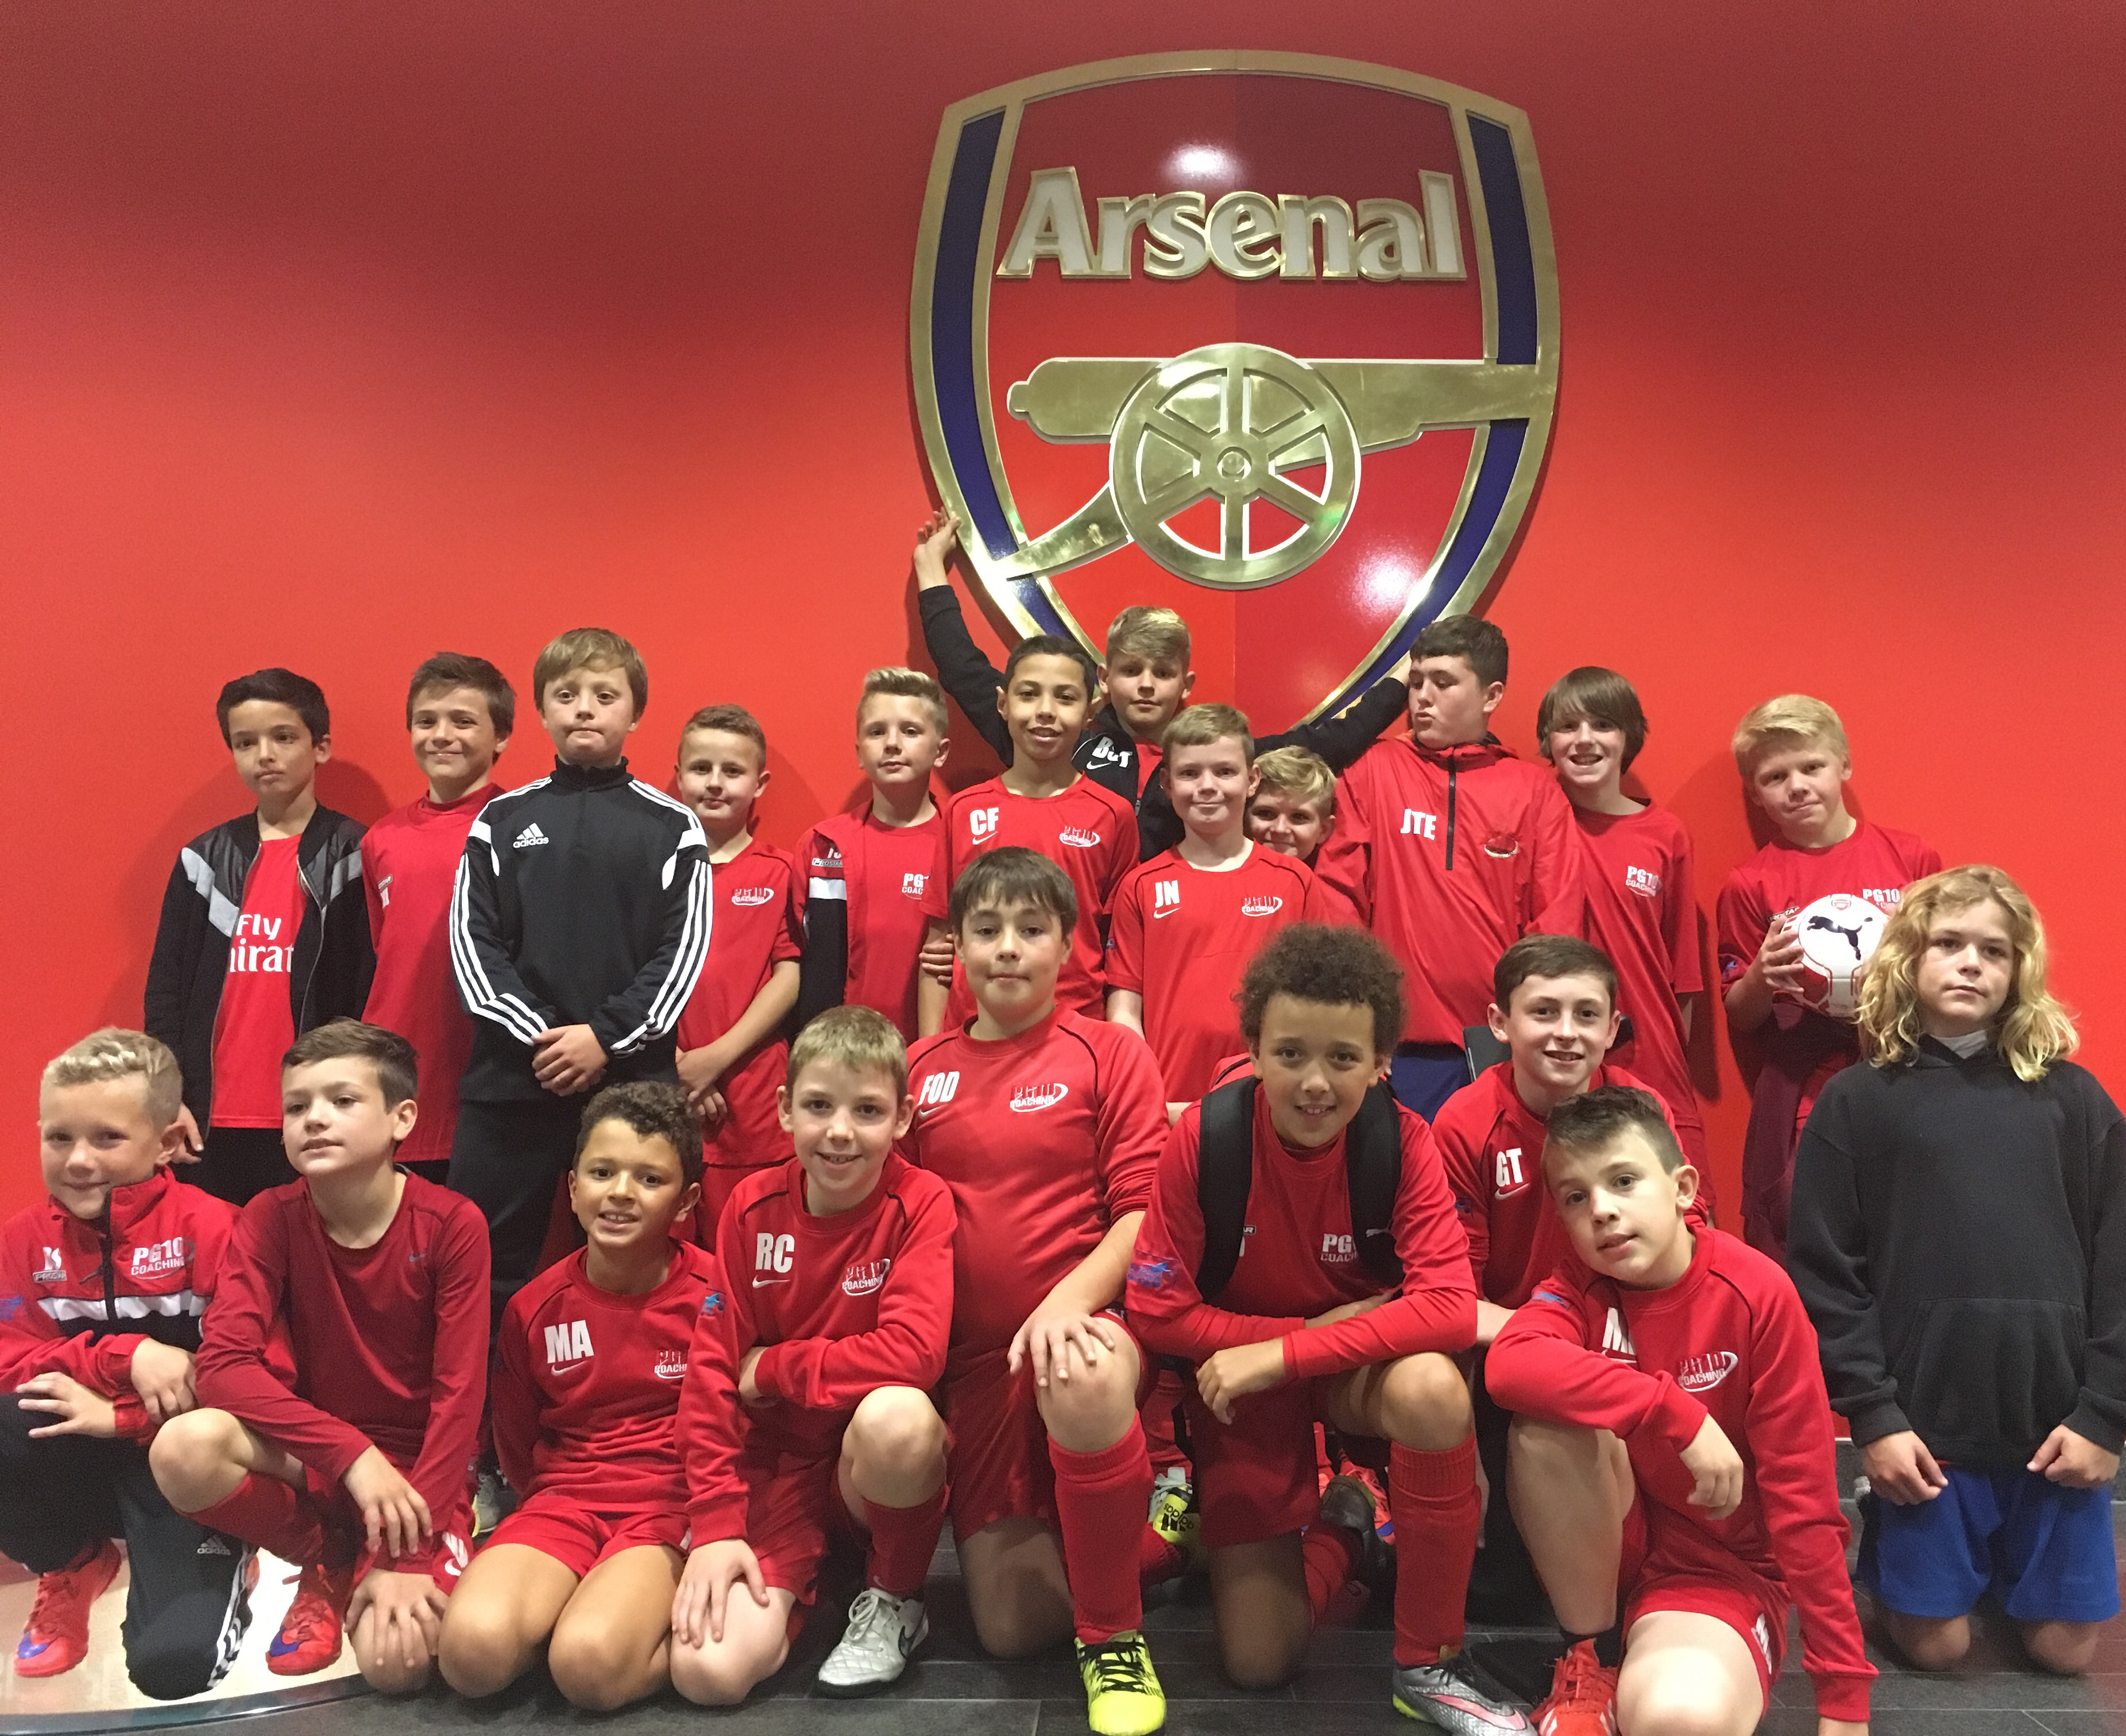 Arsenal FC Inspires